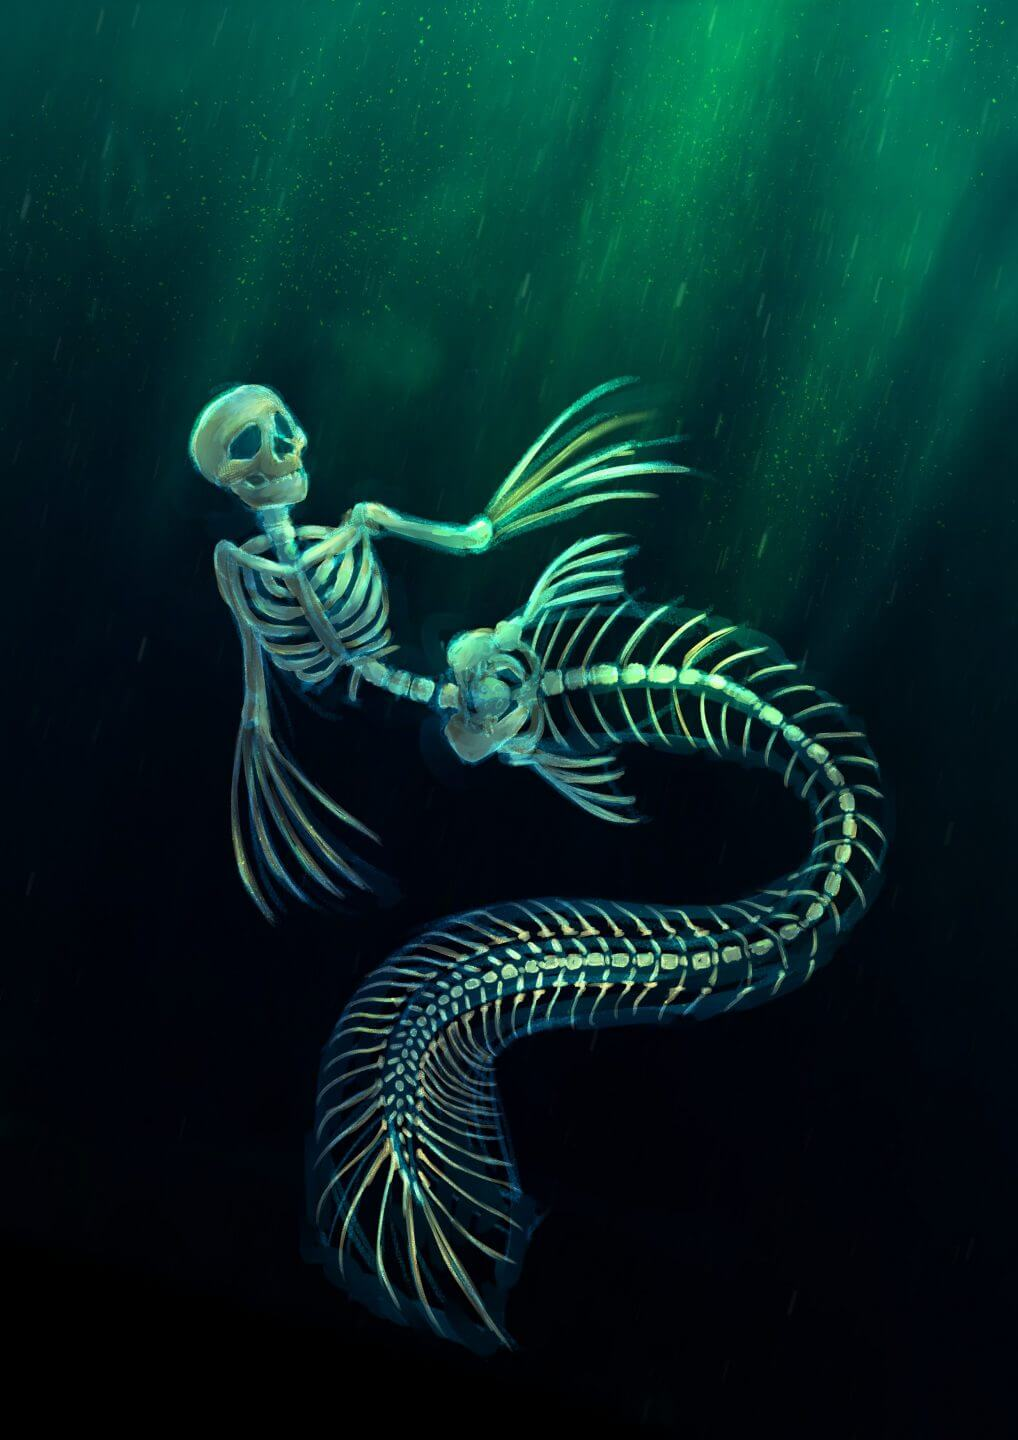 A deep sea undead mermaid in her natural habitat.